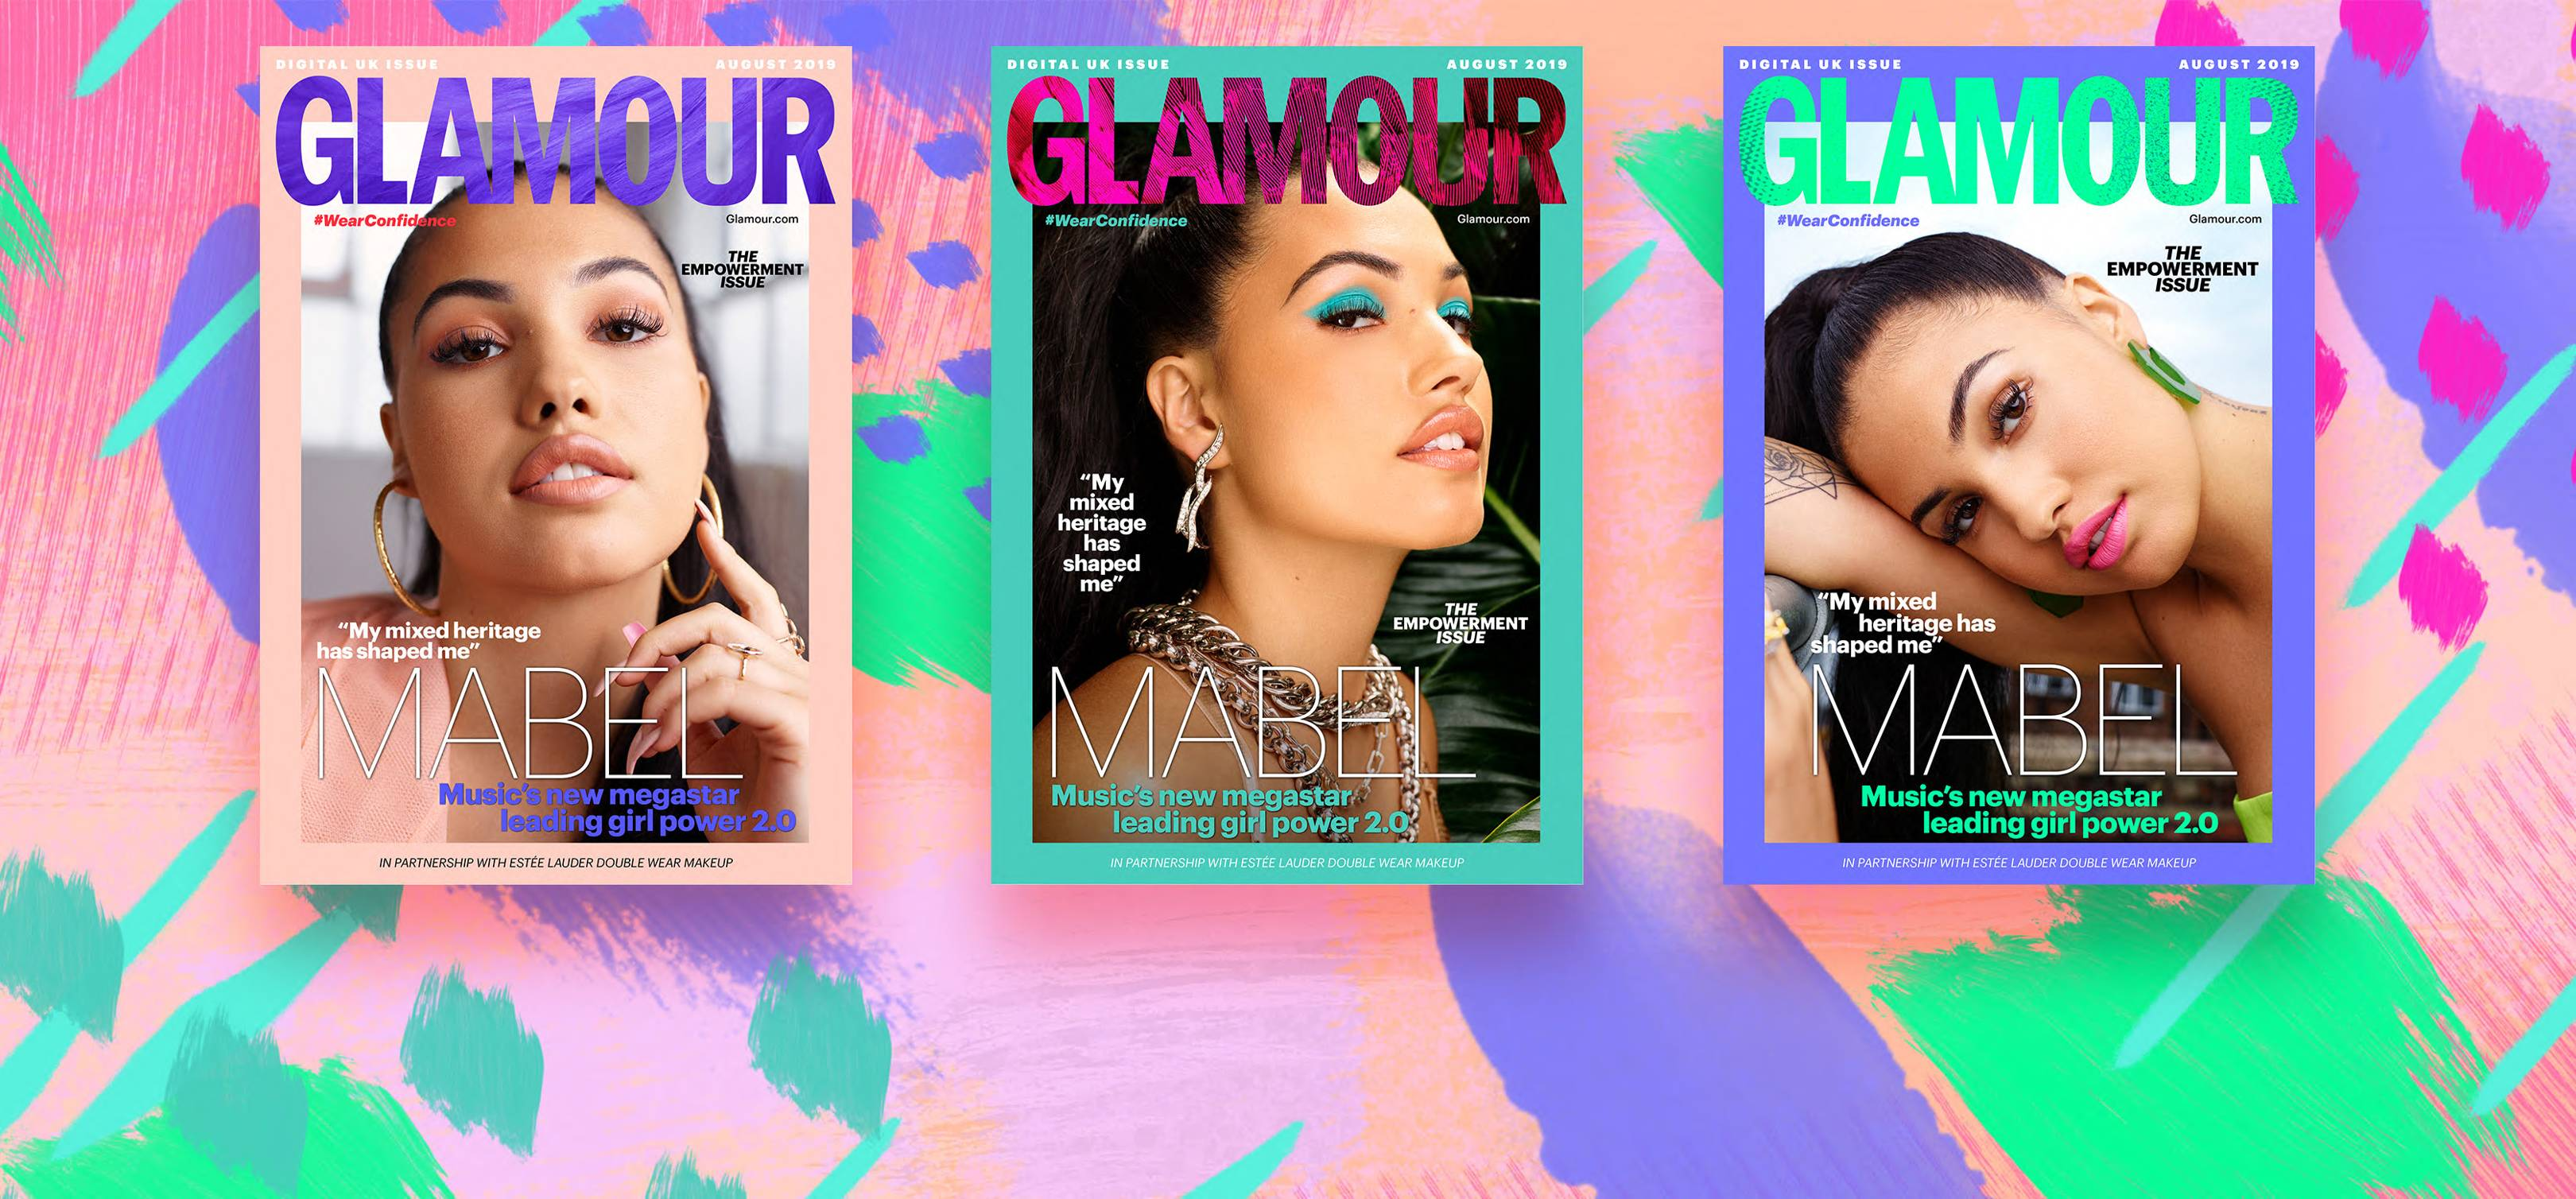 Mabel Chats Mental Health, Music And Empowerment As GLAMOUR's August